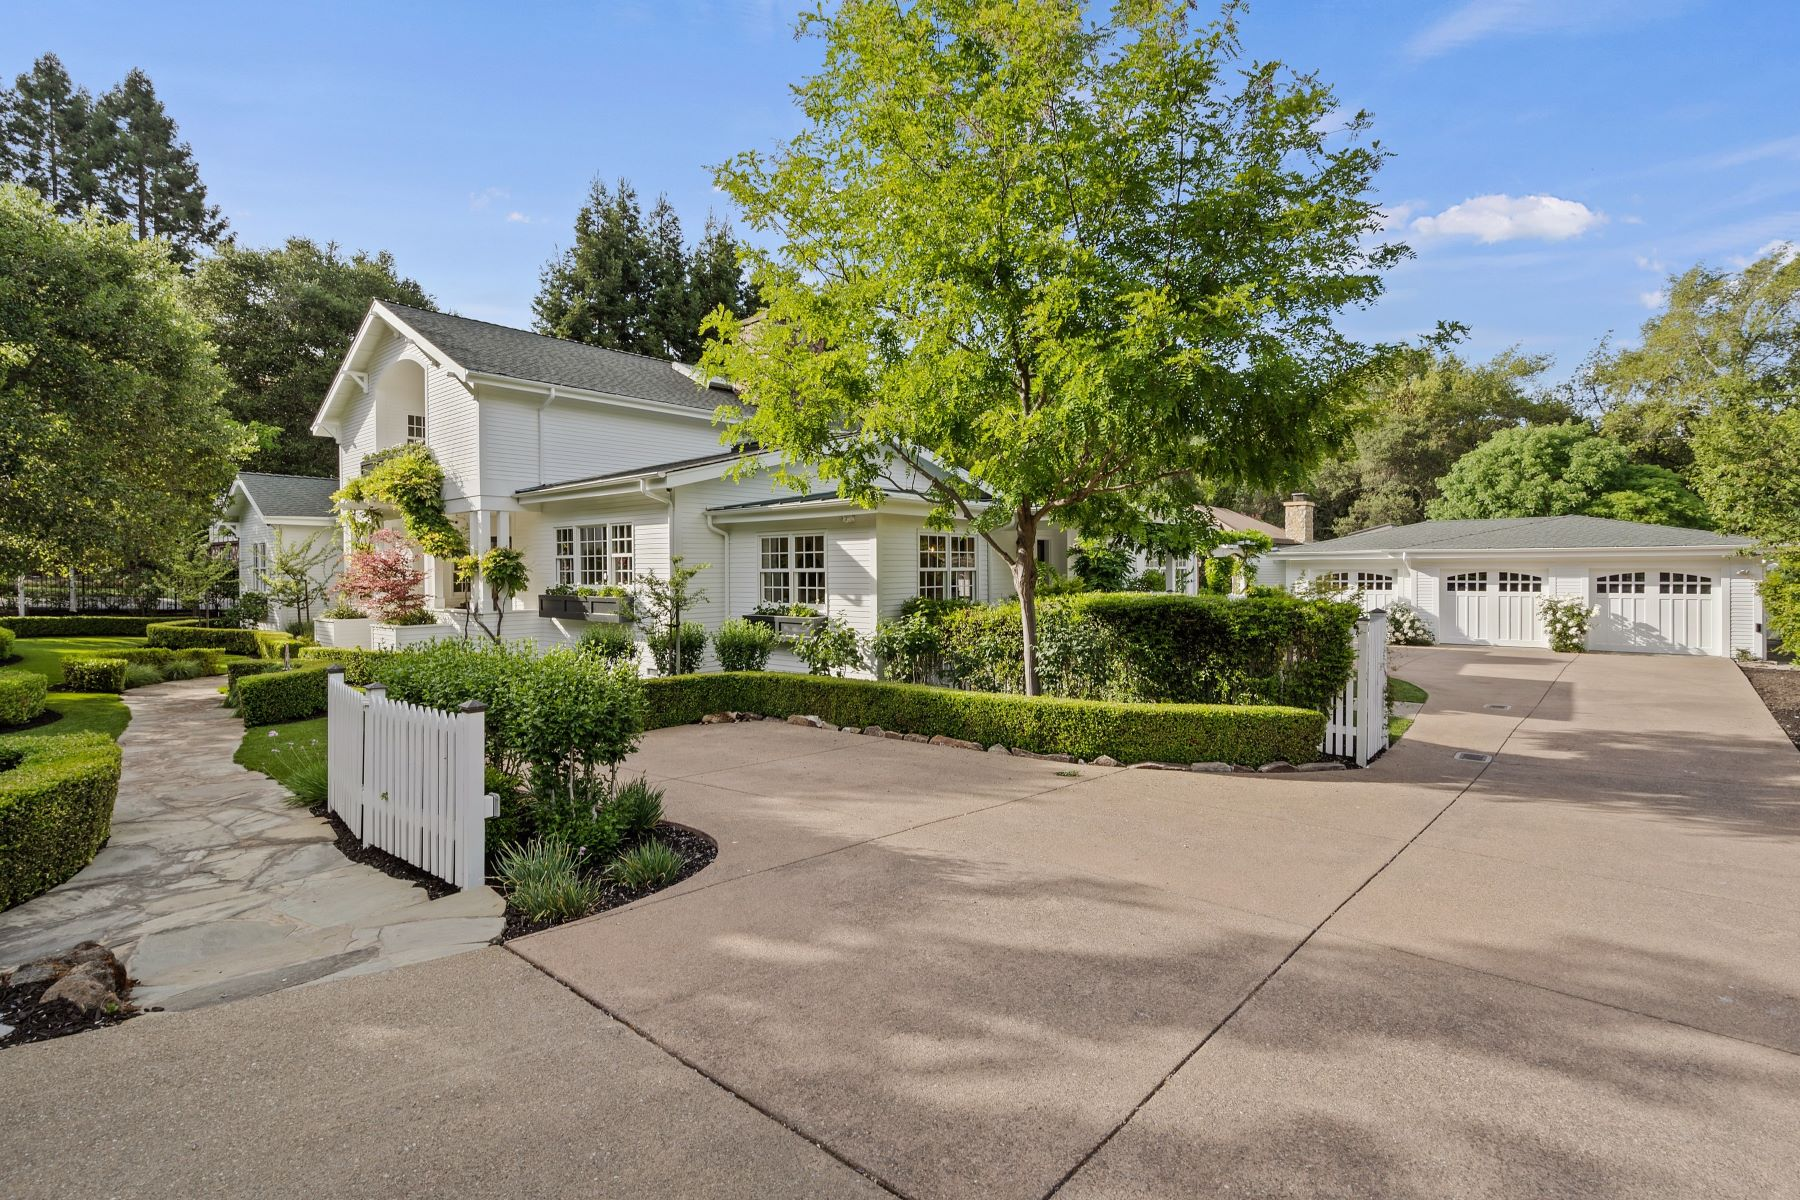 Single Family Homes for Sale at Elegant Entertainer's Estate 3540 Springhill Road Lafayette, California 94549 United States